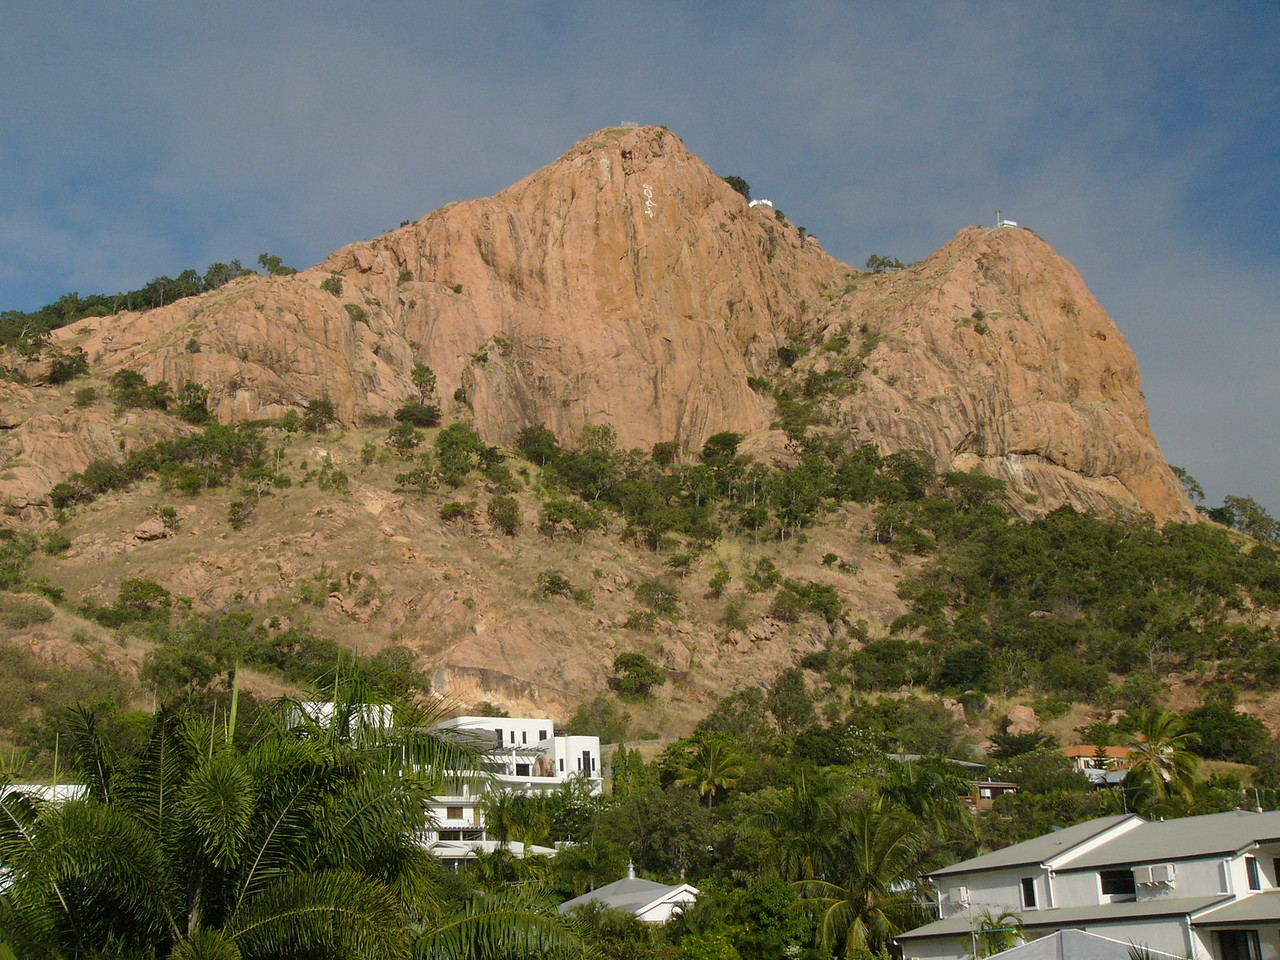 20070528_2846. Castle Hill, Townsville. The 'angel' on the side of the hill was originally a university prank. Following a town vote, it has been actively maintained (rather than removed!) ever since. There are several ways to walk up the hill, including the 'goat track' which runs along the ridge seen to the left of the peak. Alternatively, a taxi can be hired to get to the top.